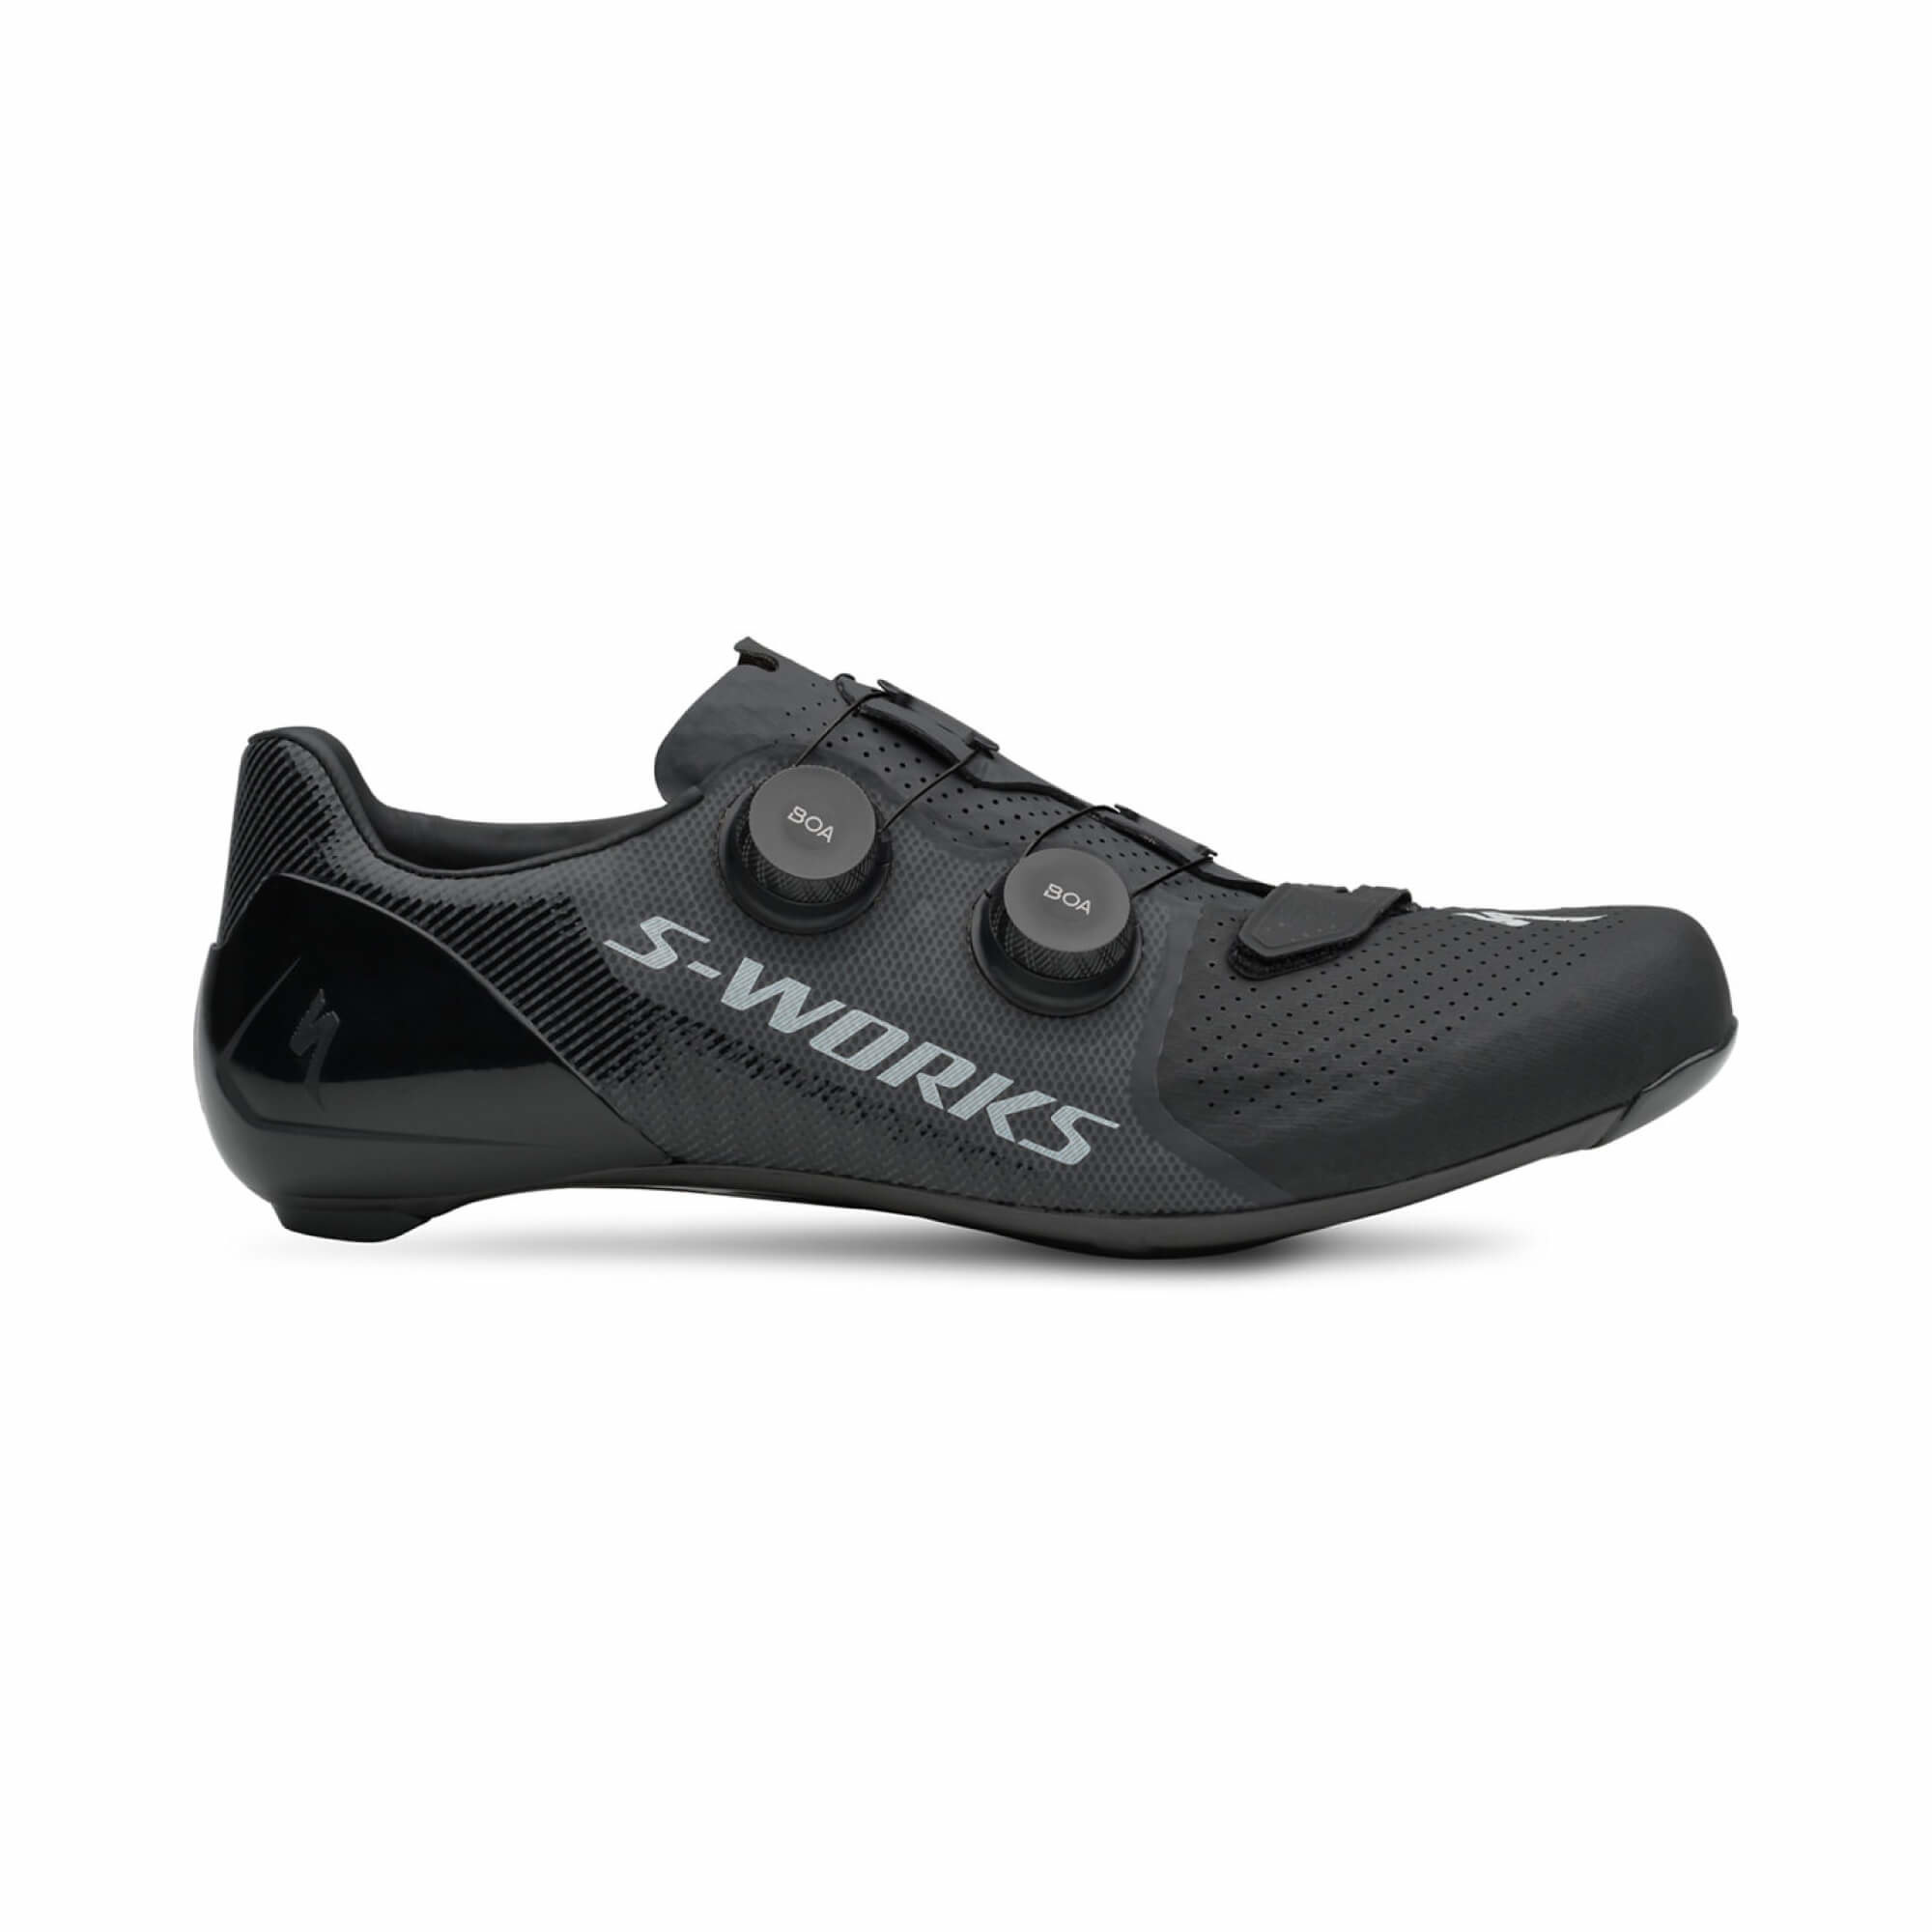 S-Works 7 Road Shoe-10